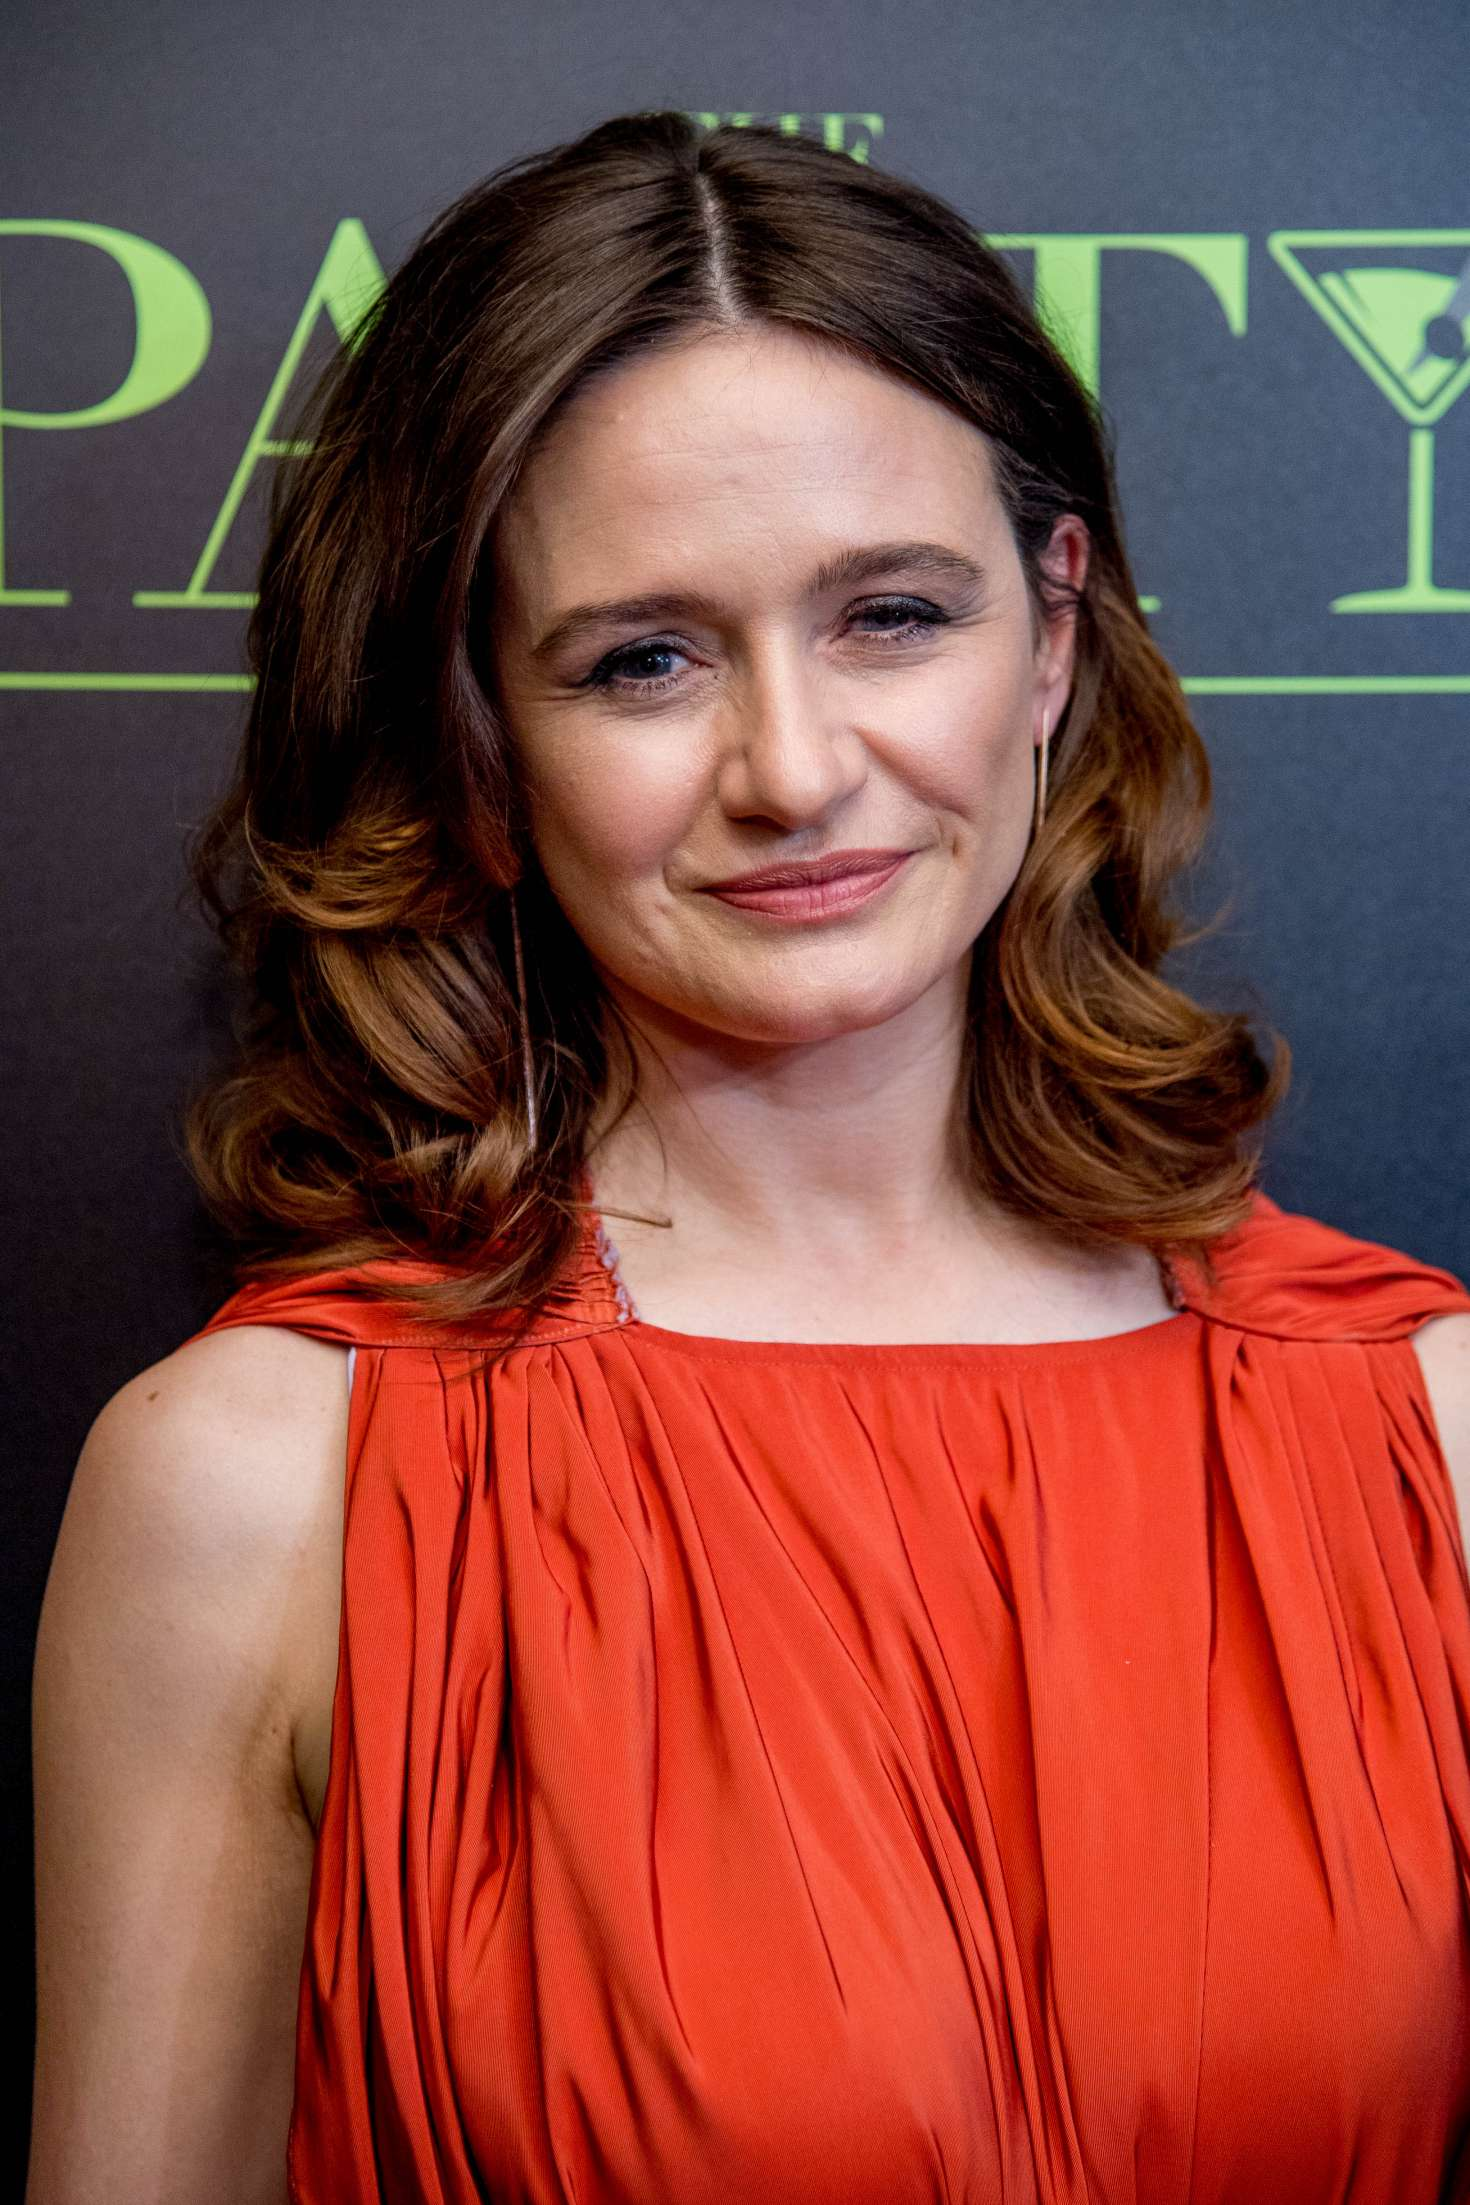 Emily Mortimer nudes (51 photos), leaked Sexy, Instagram, swimsuit 2020